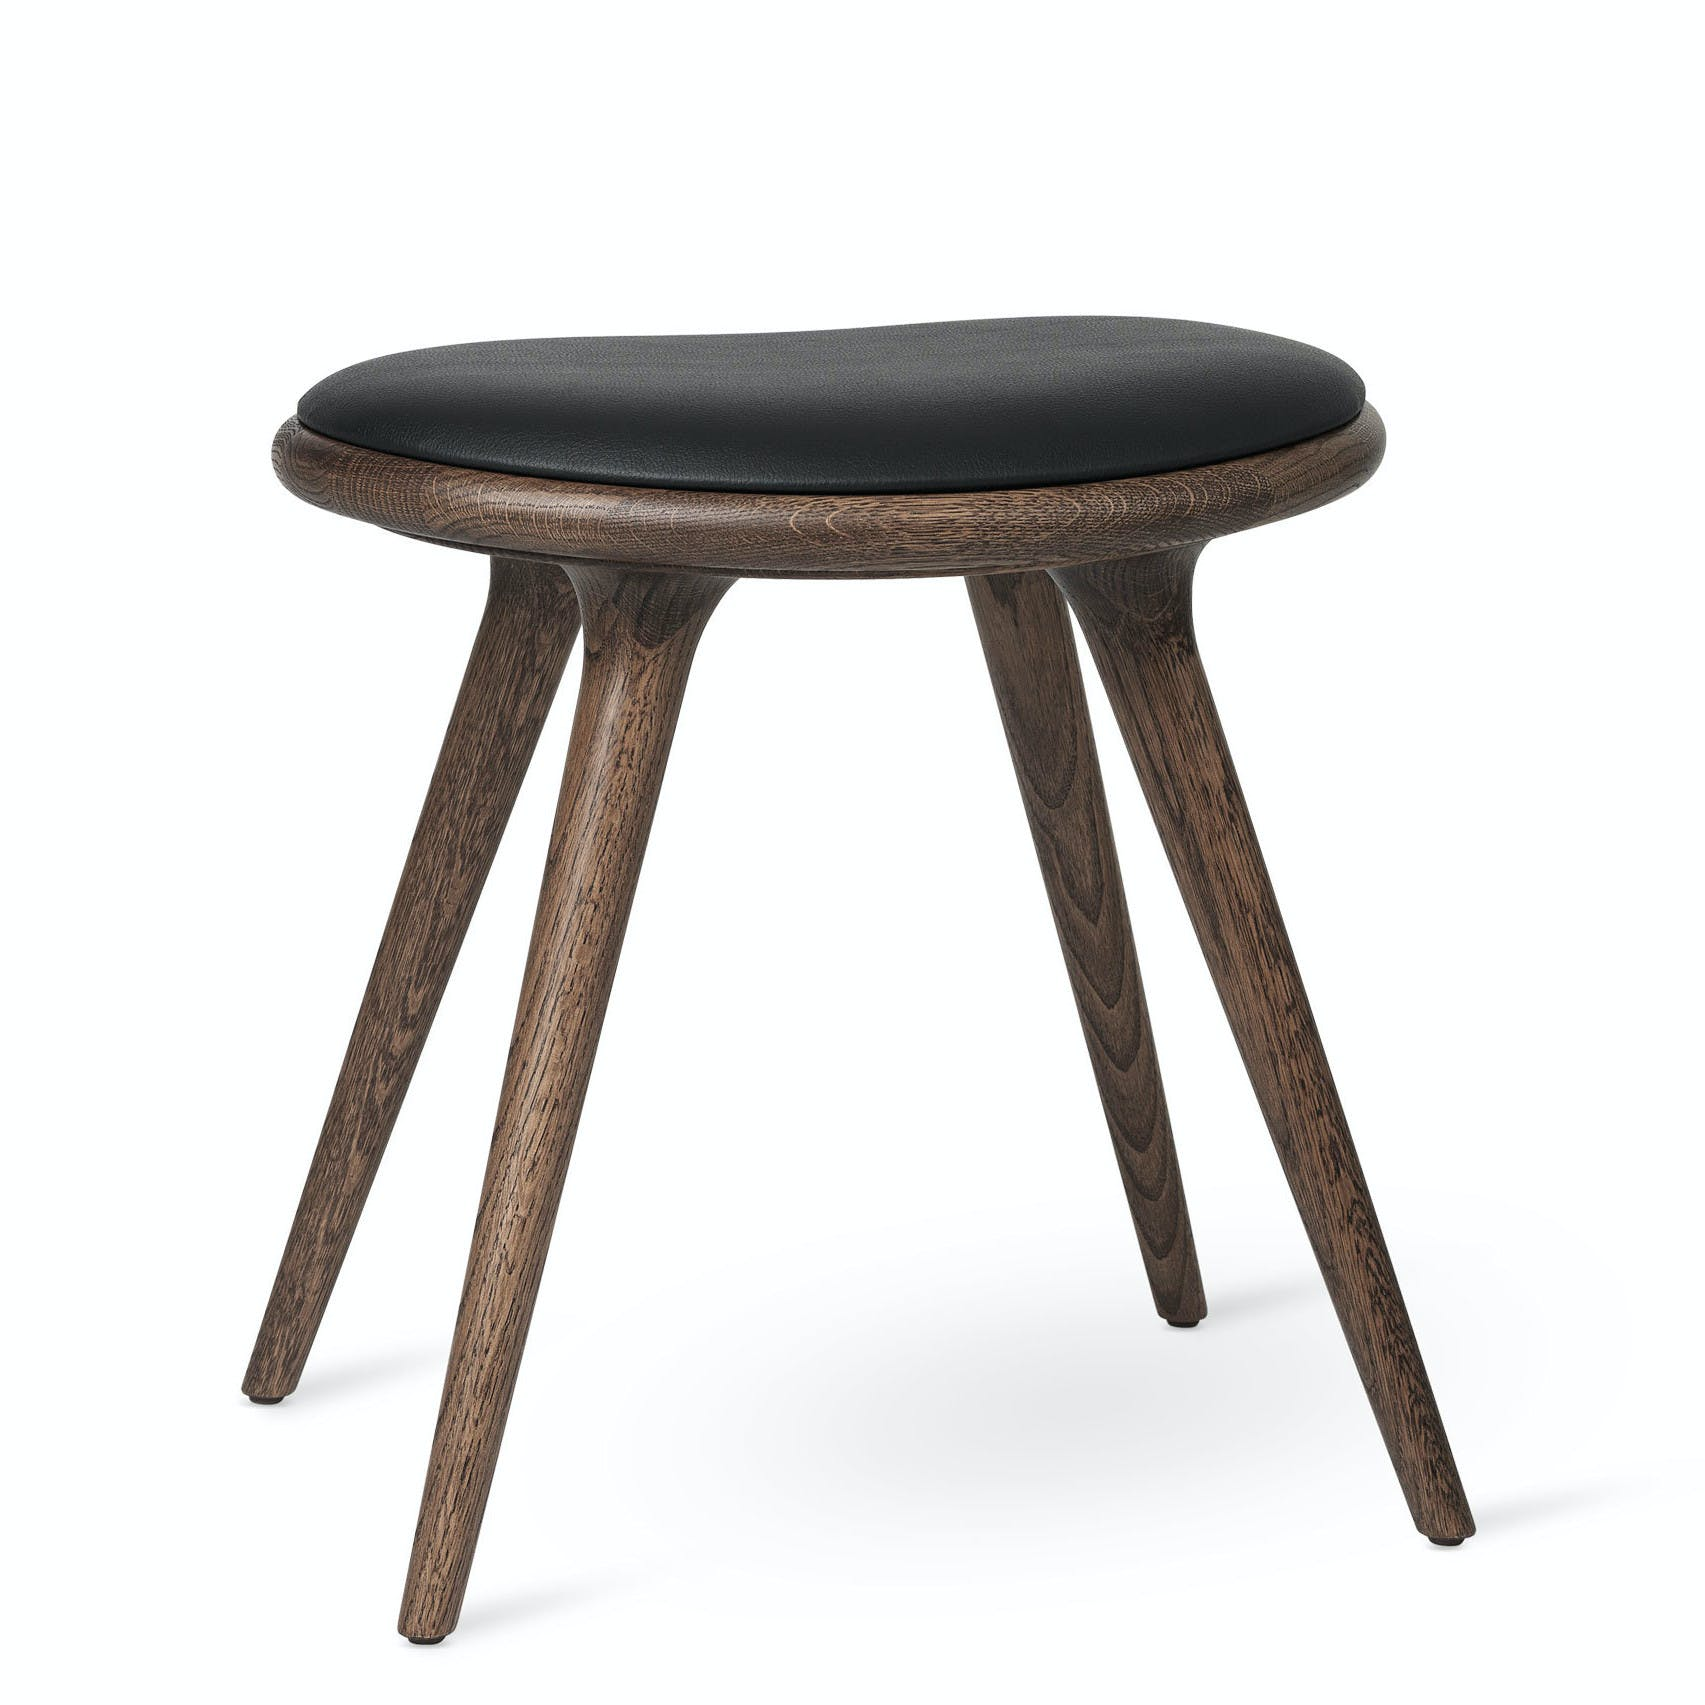 Mater Dark Stained Oak Low Stool Haute Living